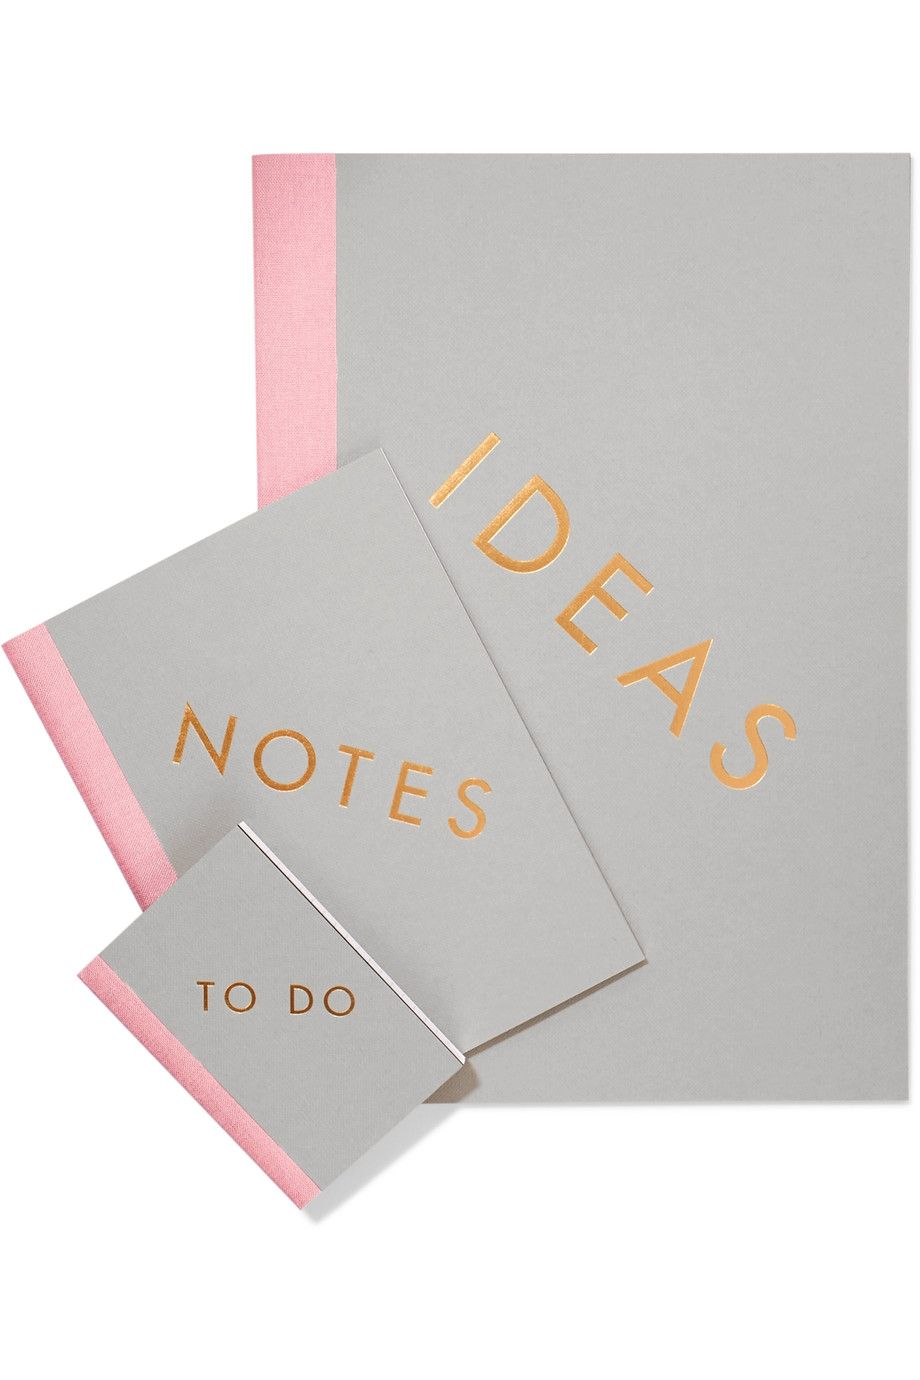 hbz-notebooks-stocking-1509043815.jpg (920×1380)